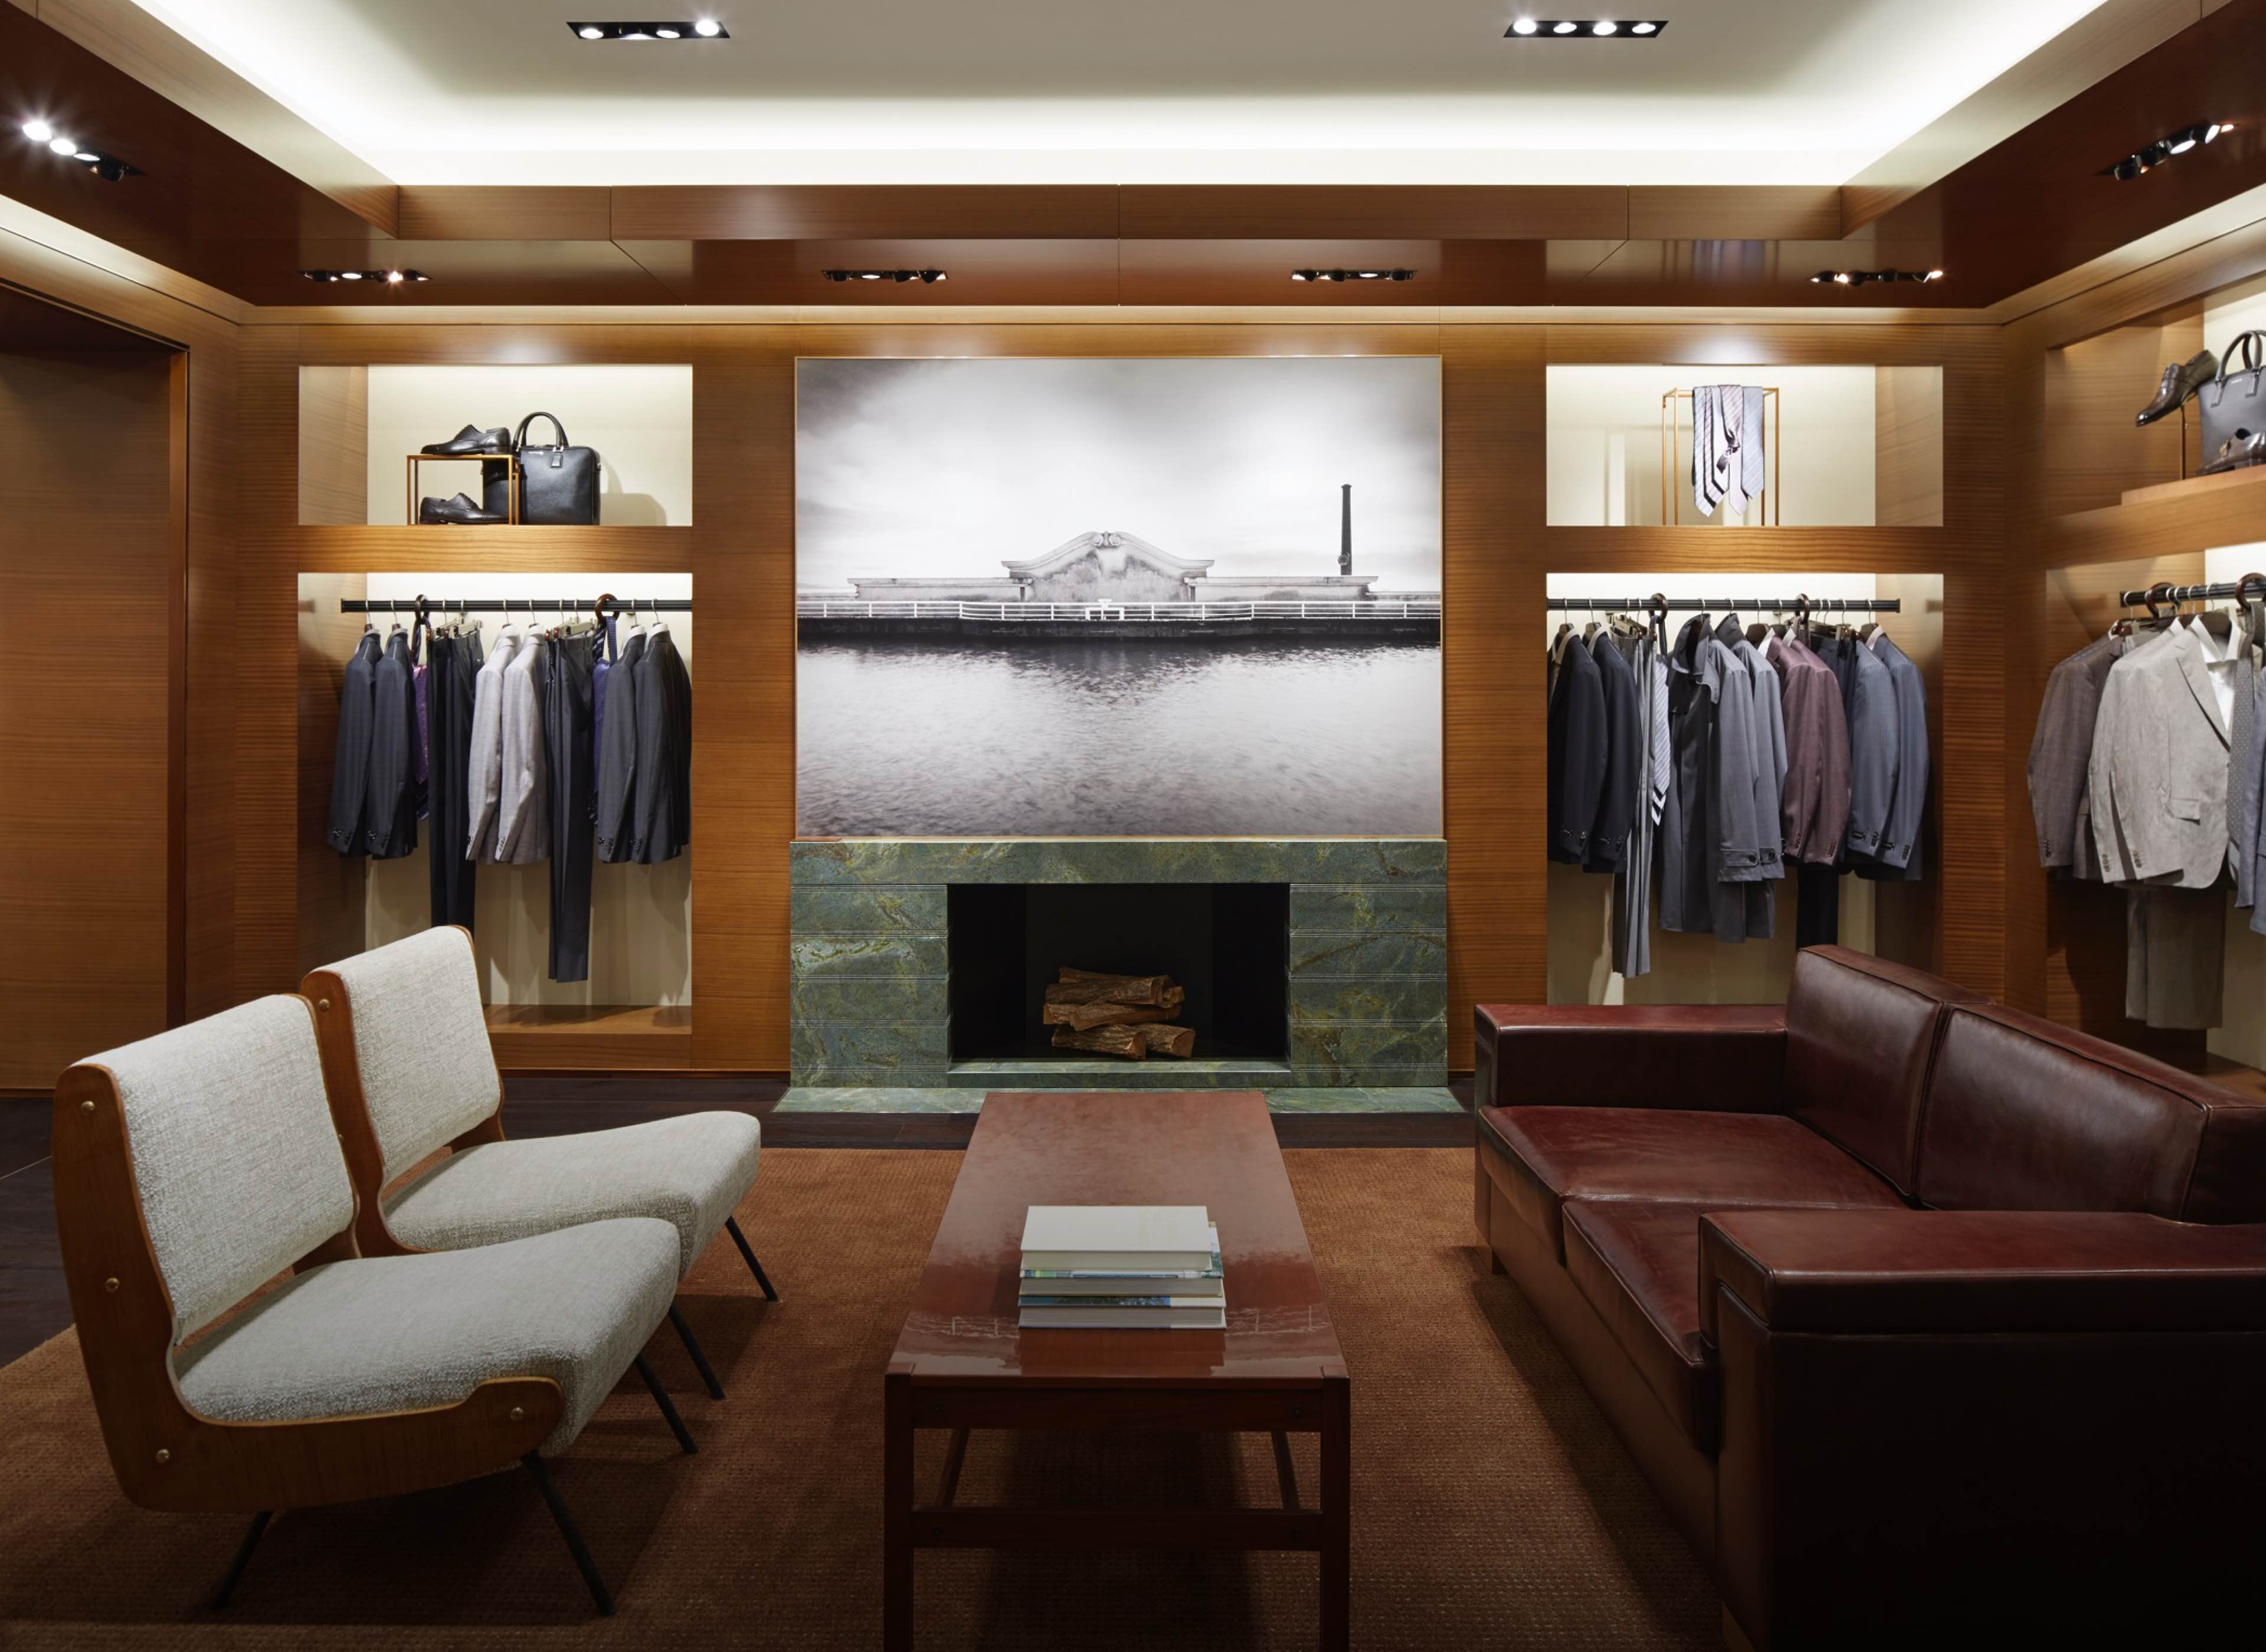 Zegna network services | Zegna